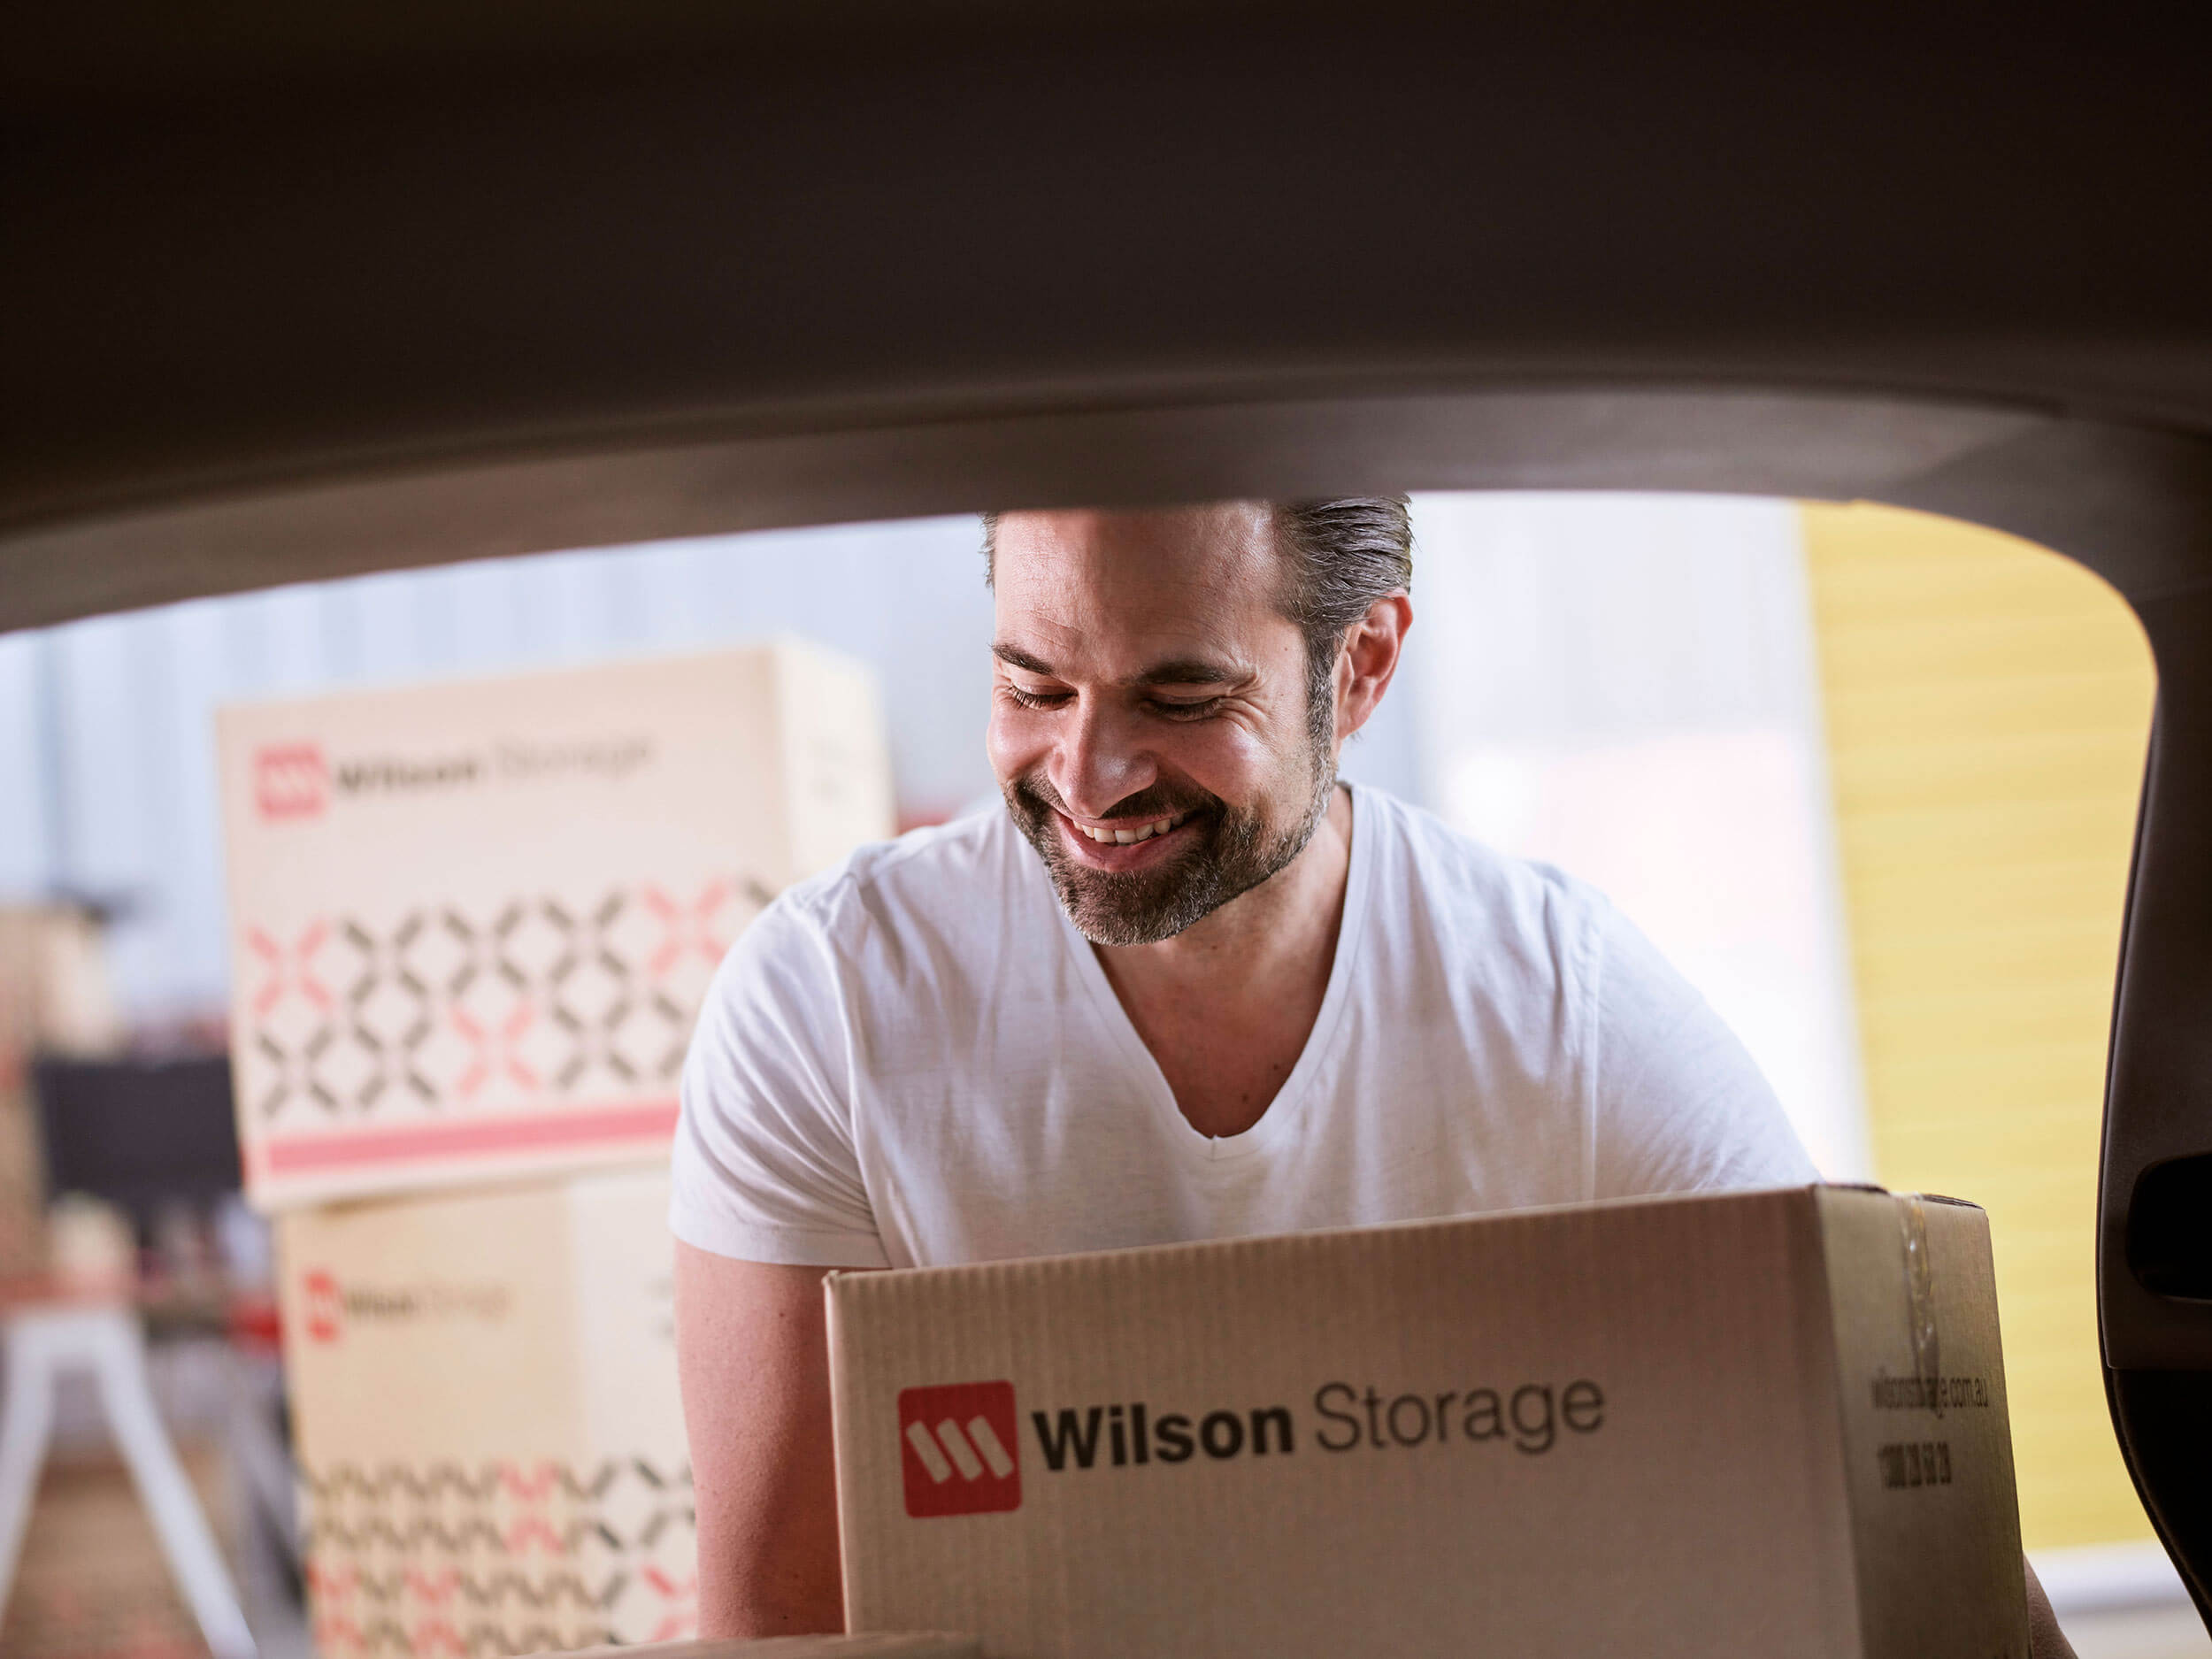 Wilson_Group_Storage_38983